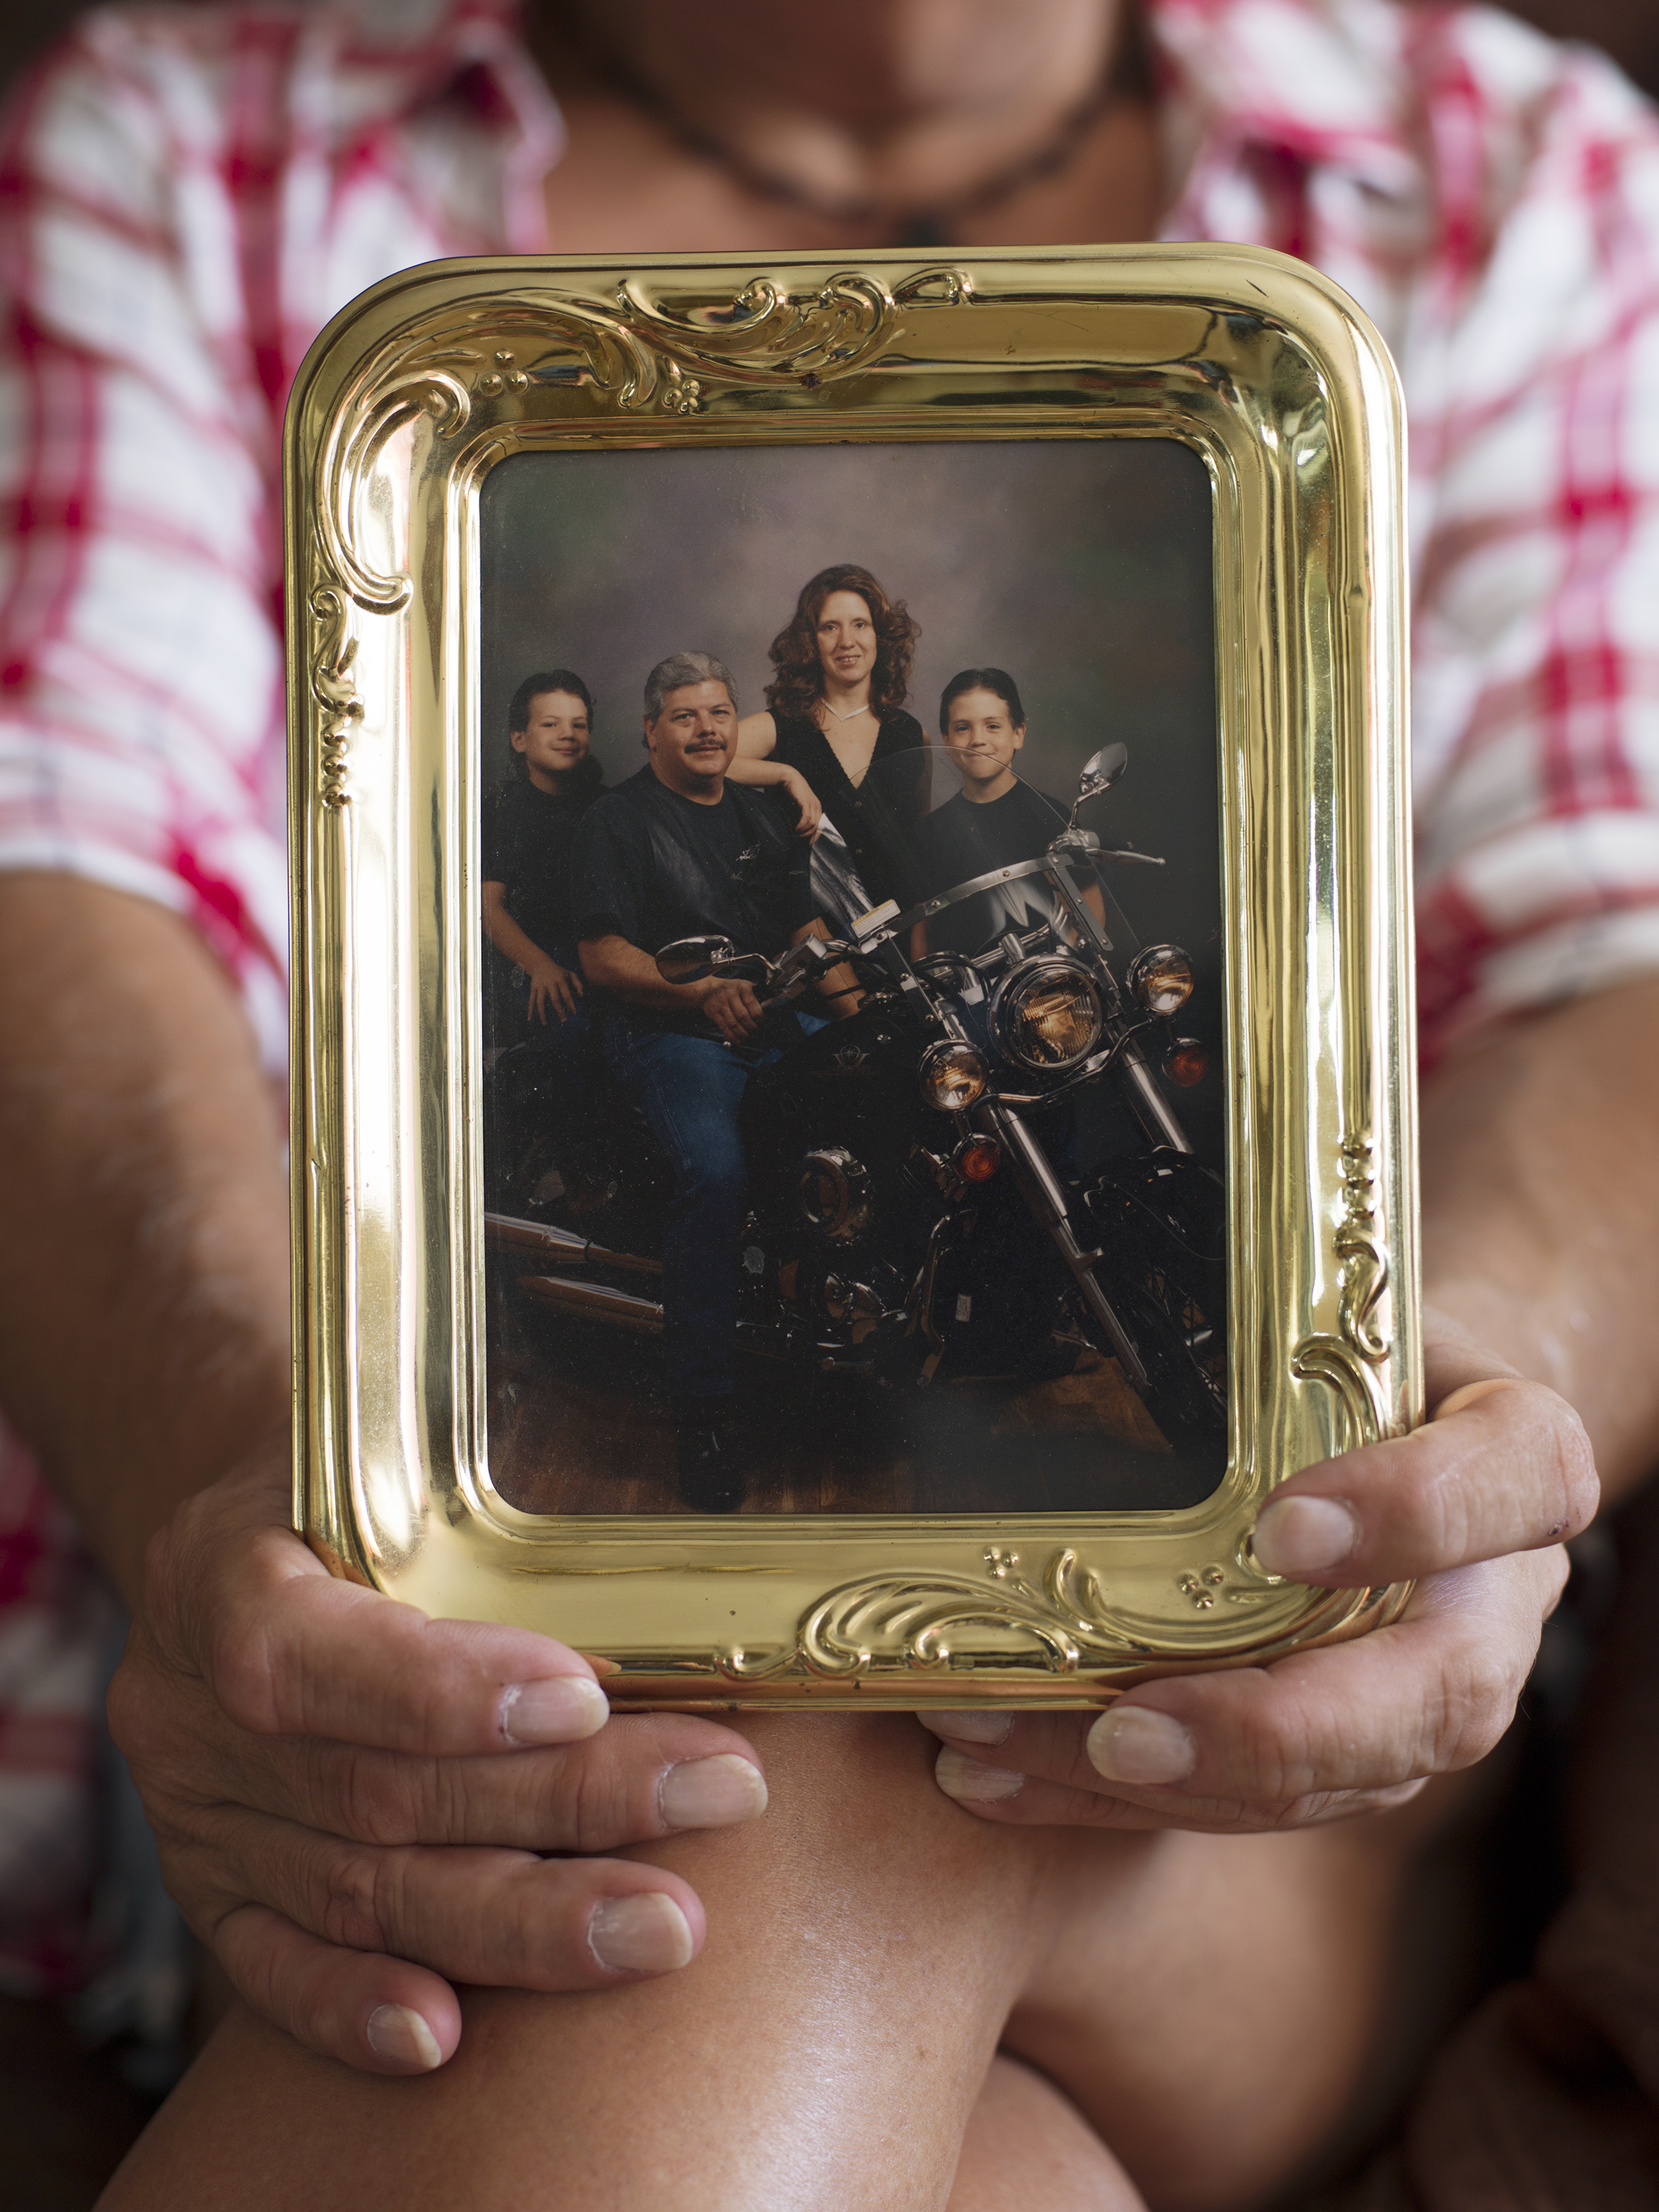 Bobbie holding a family photo from before her transition, Hanford, CA, 2016